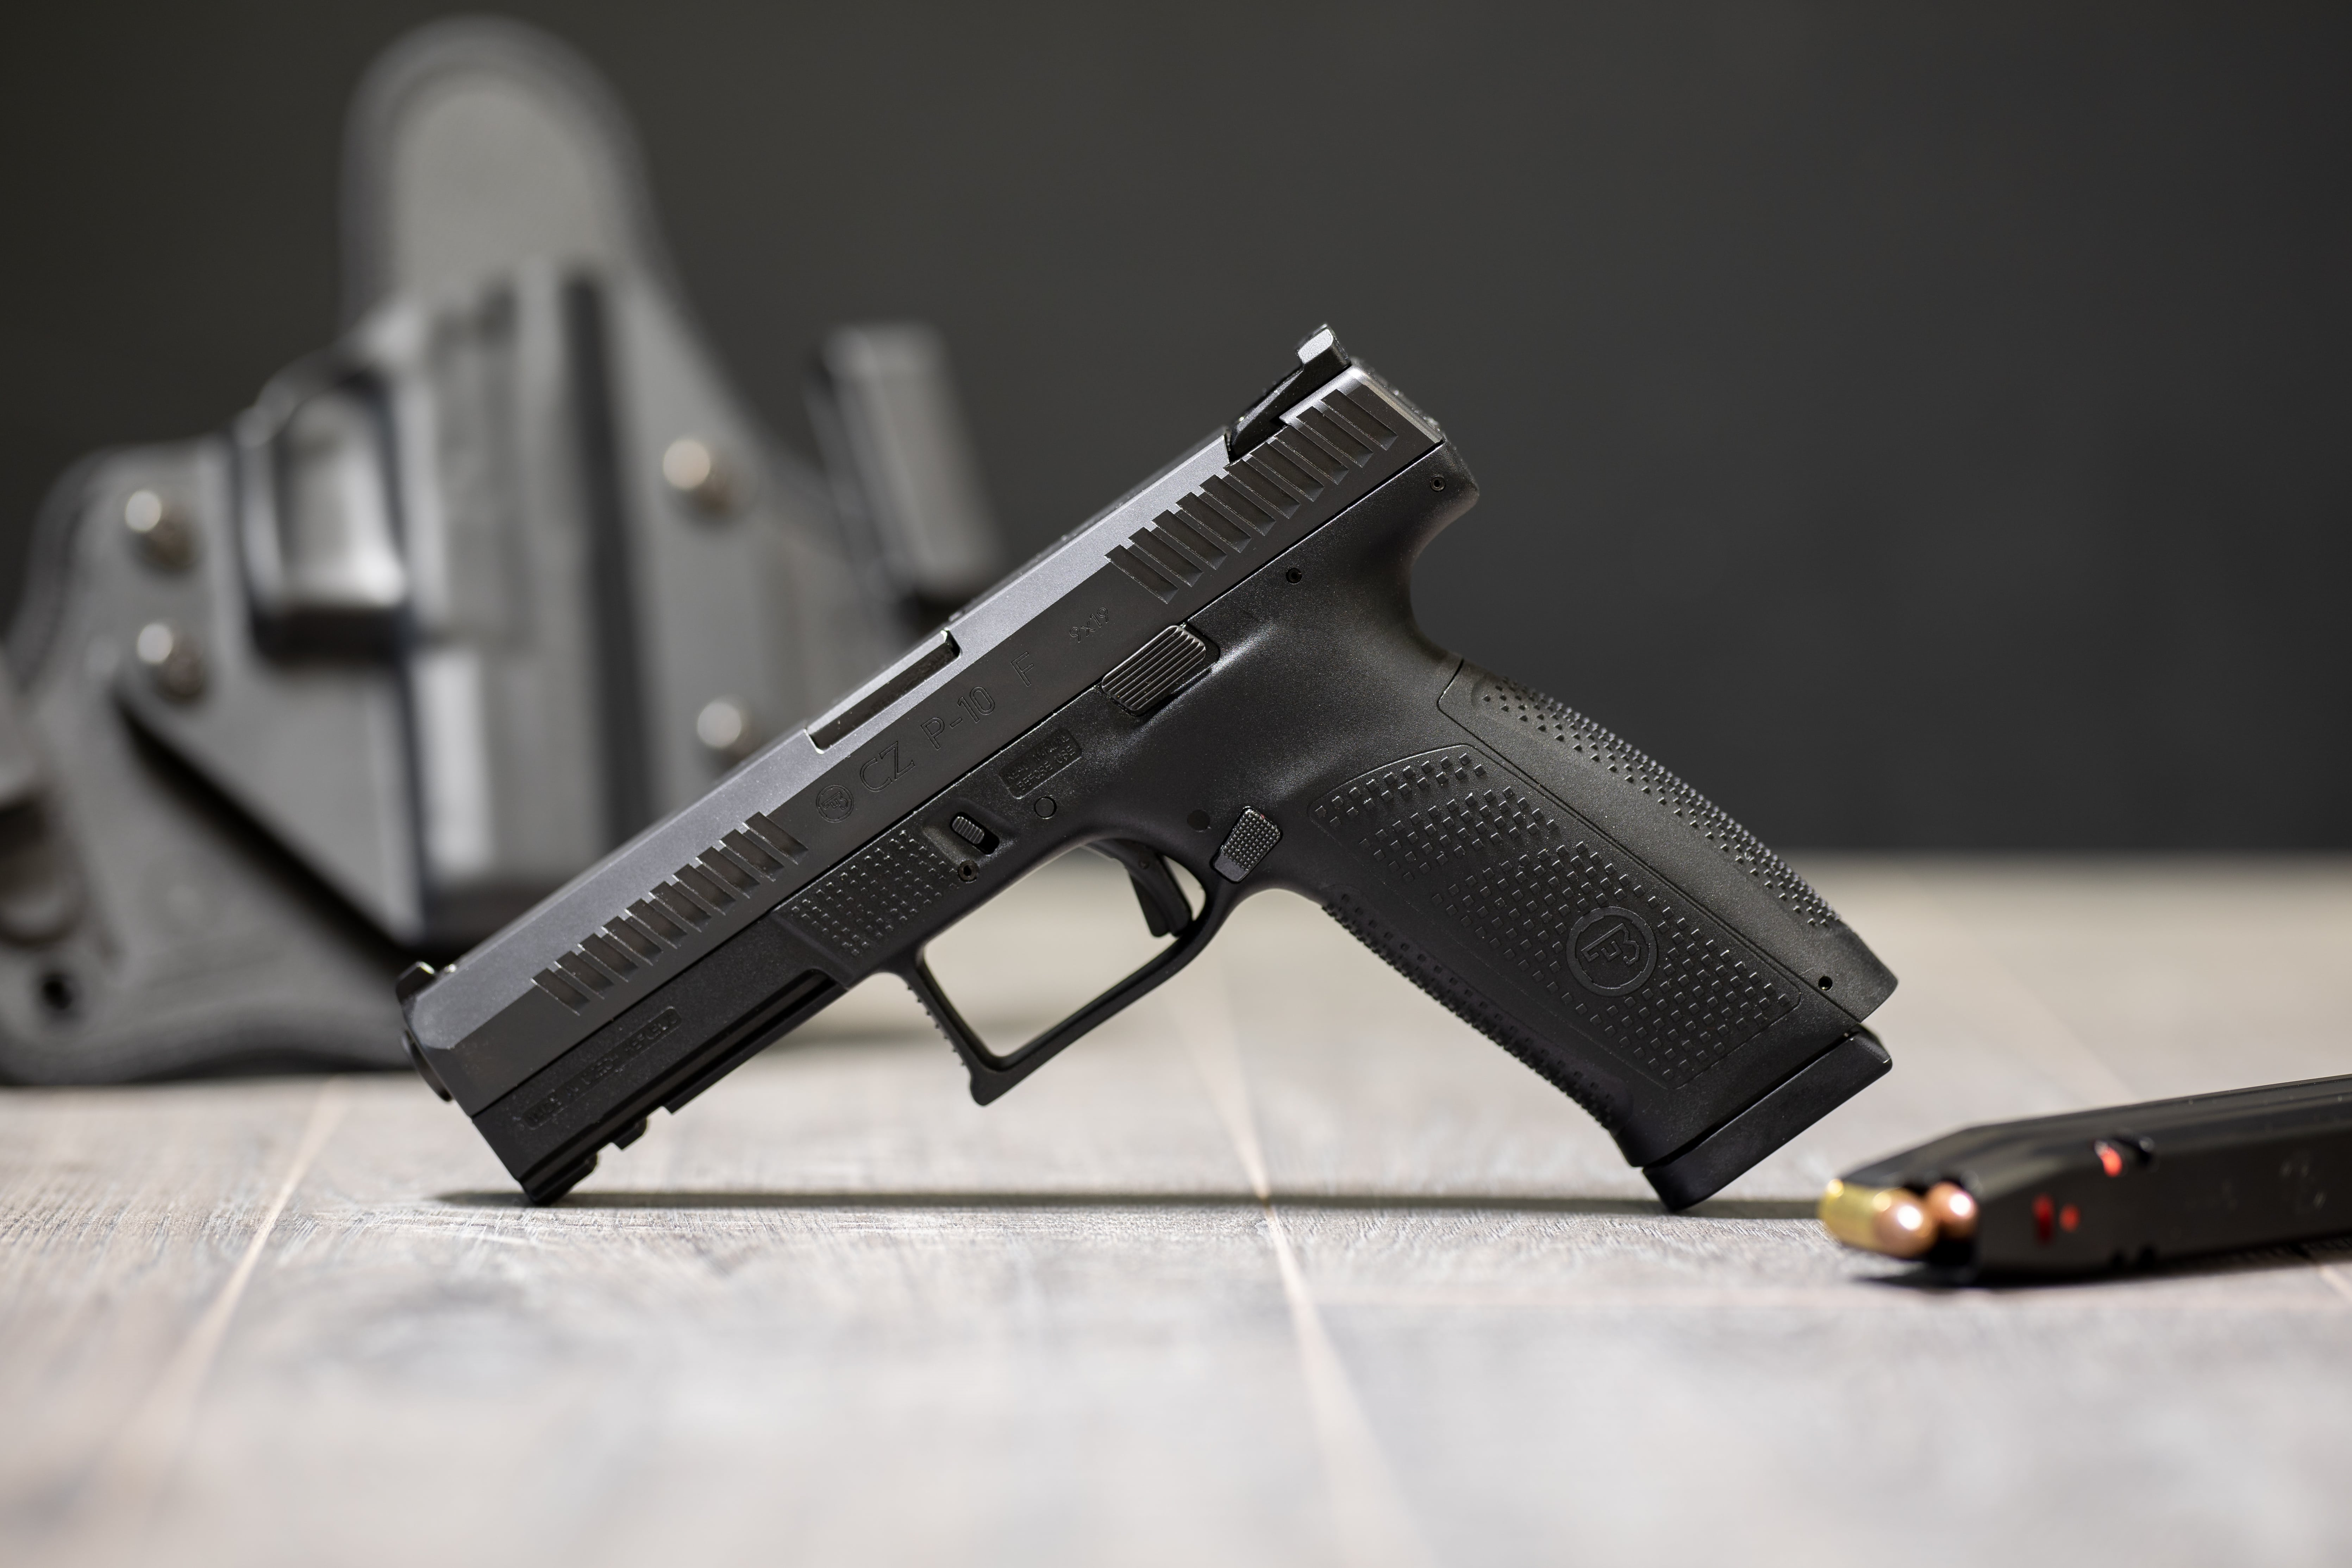 CZ P10F review